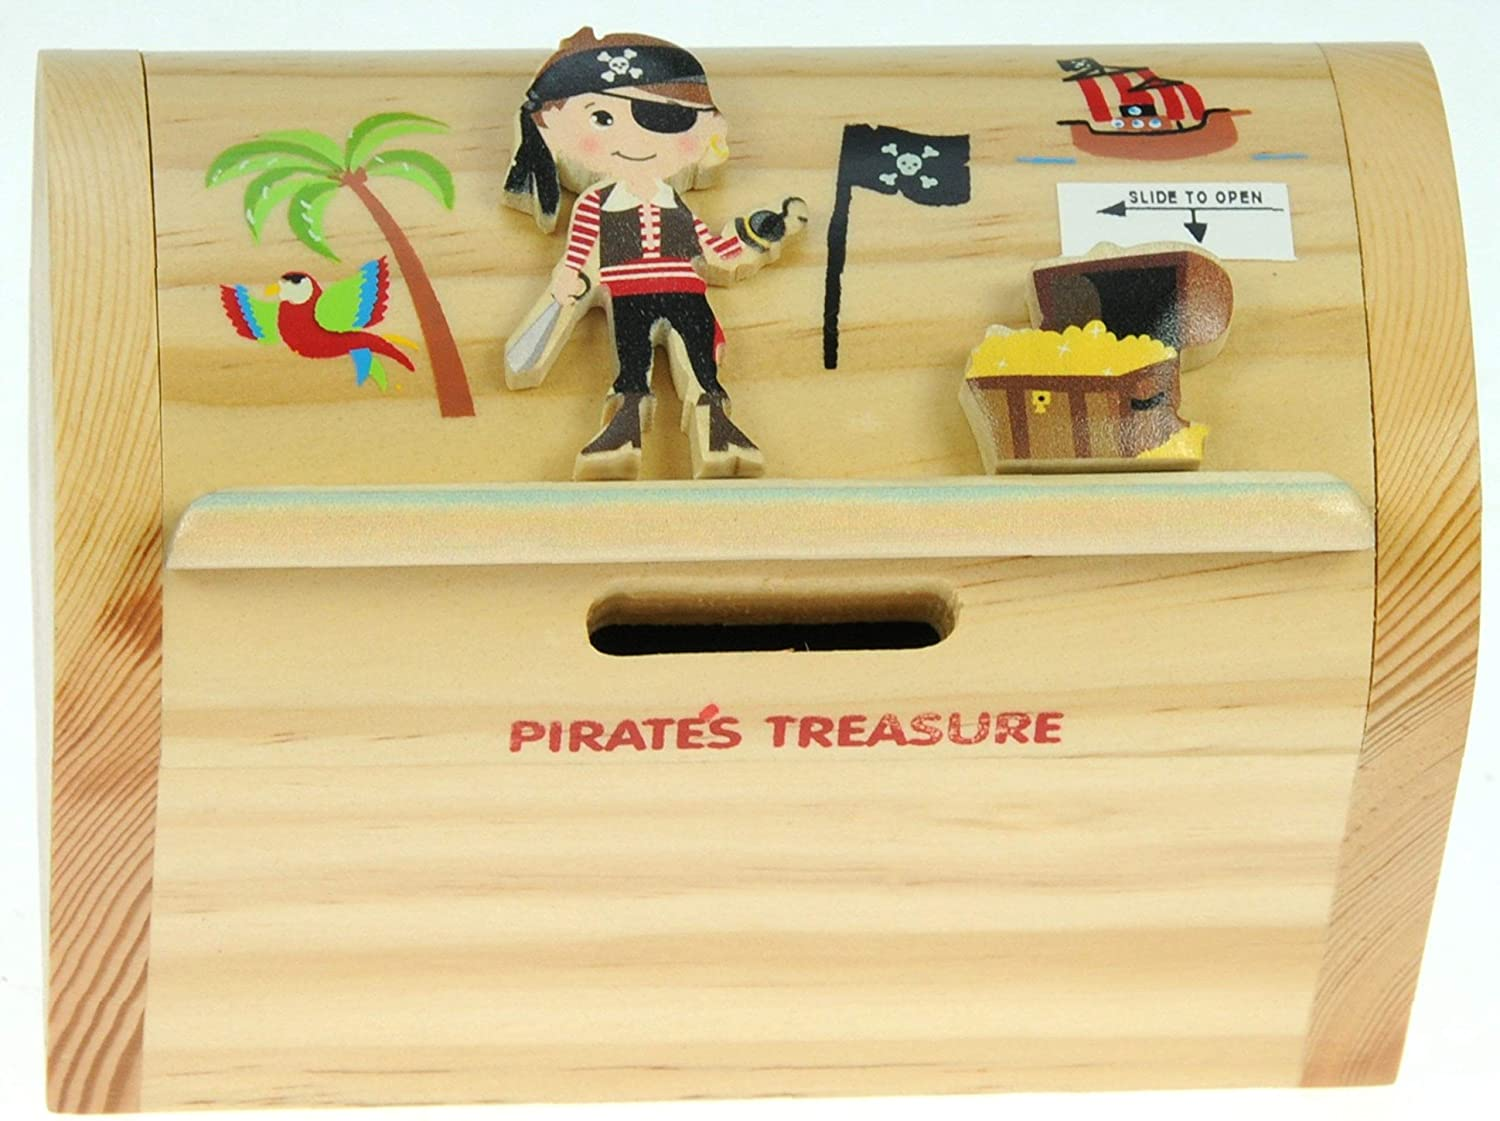 Pirate with Secret Lock Size 12 x 9 x 7cm Namesakes Childrens Money Box Piggy Bank for Kids /& Adults Wooden Toy For Boys /& Girls